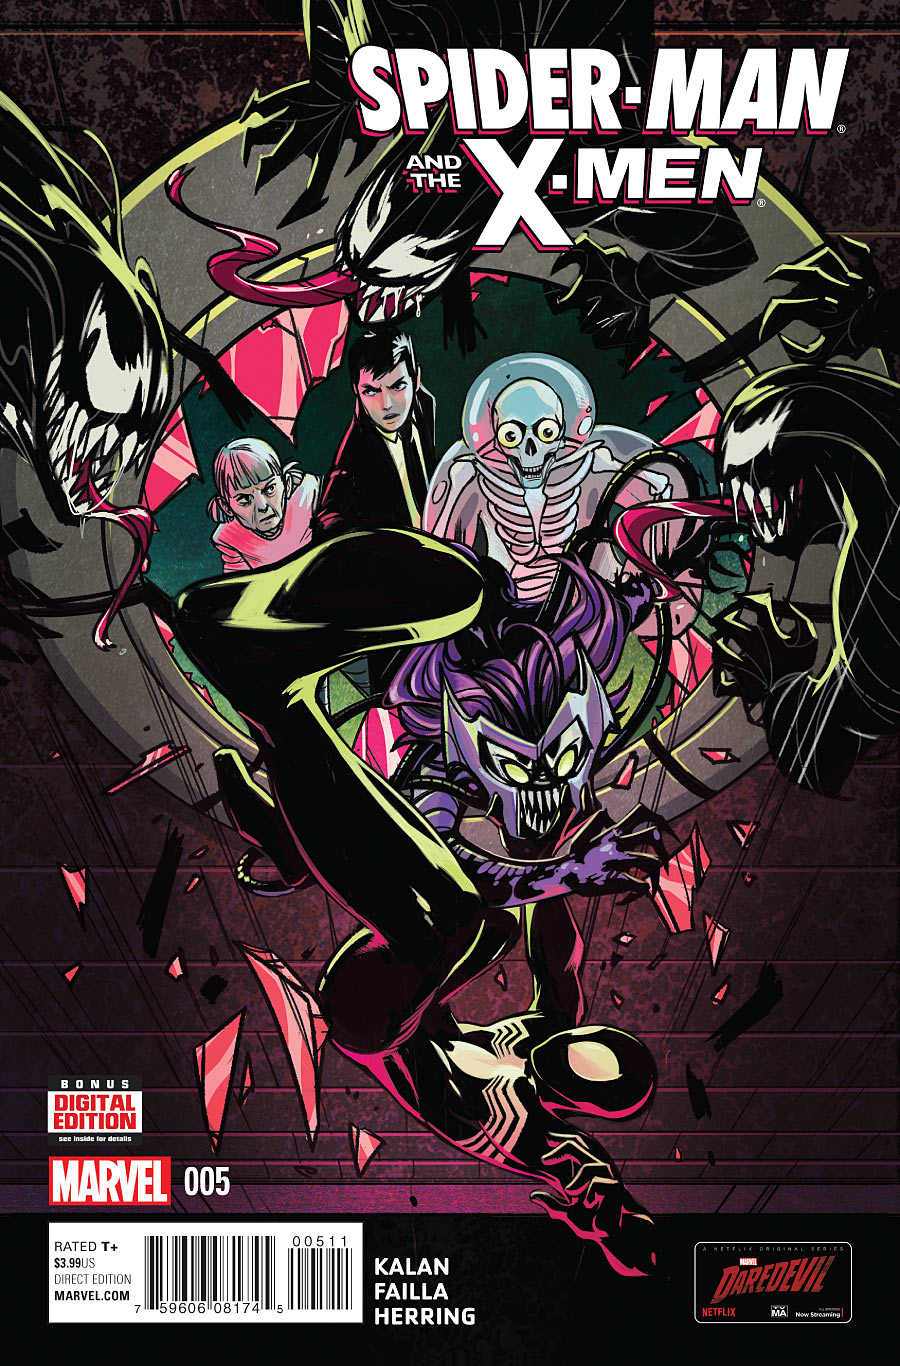 Spider-Man and the X-Men #5